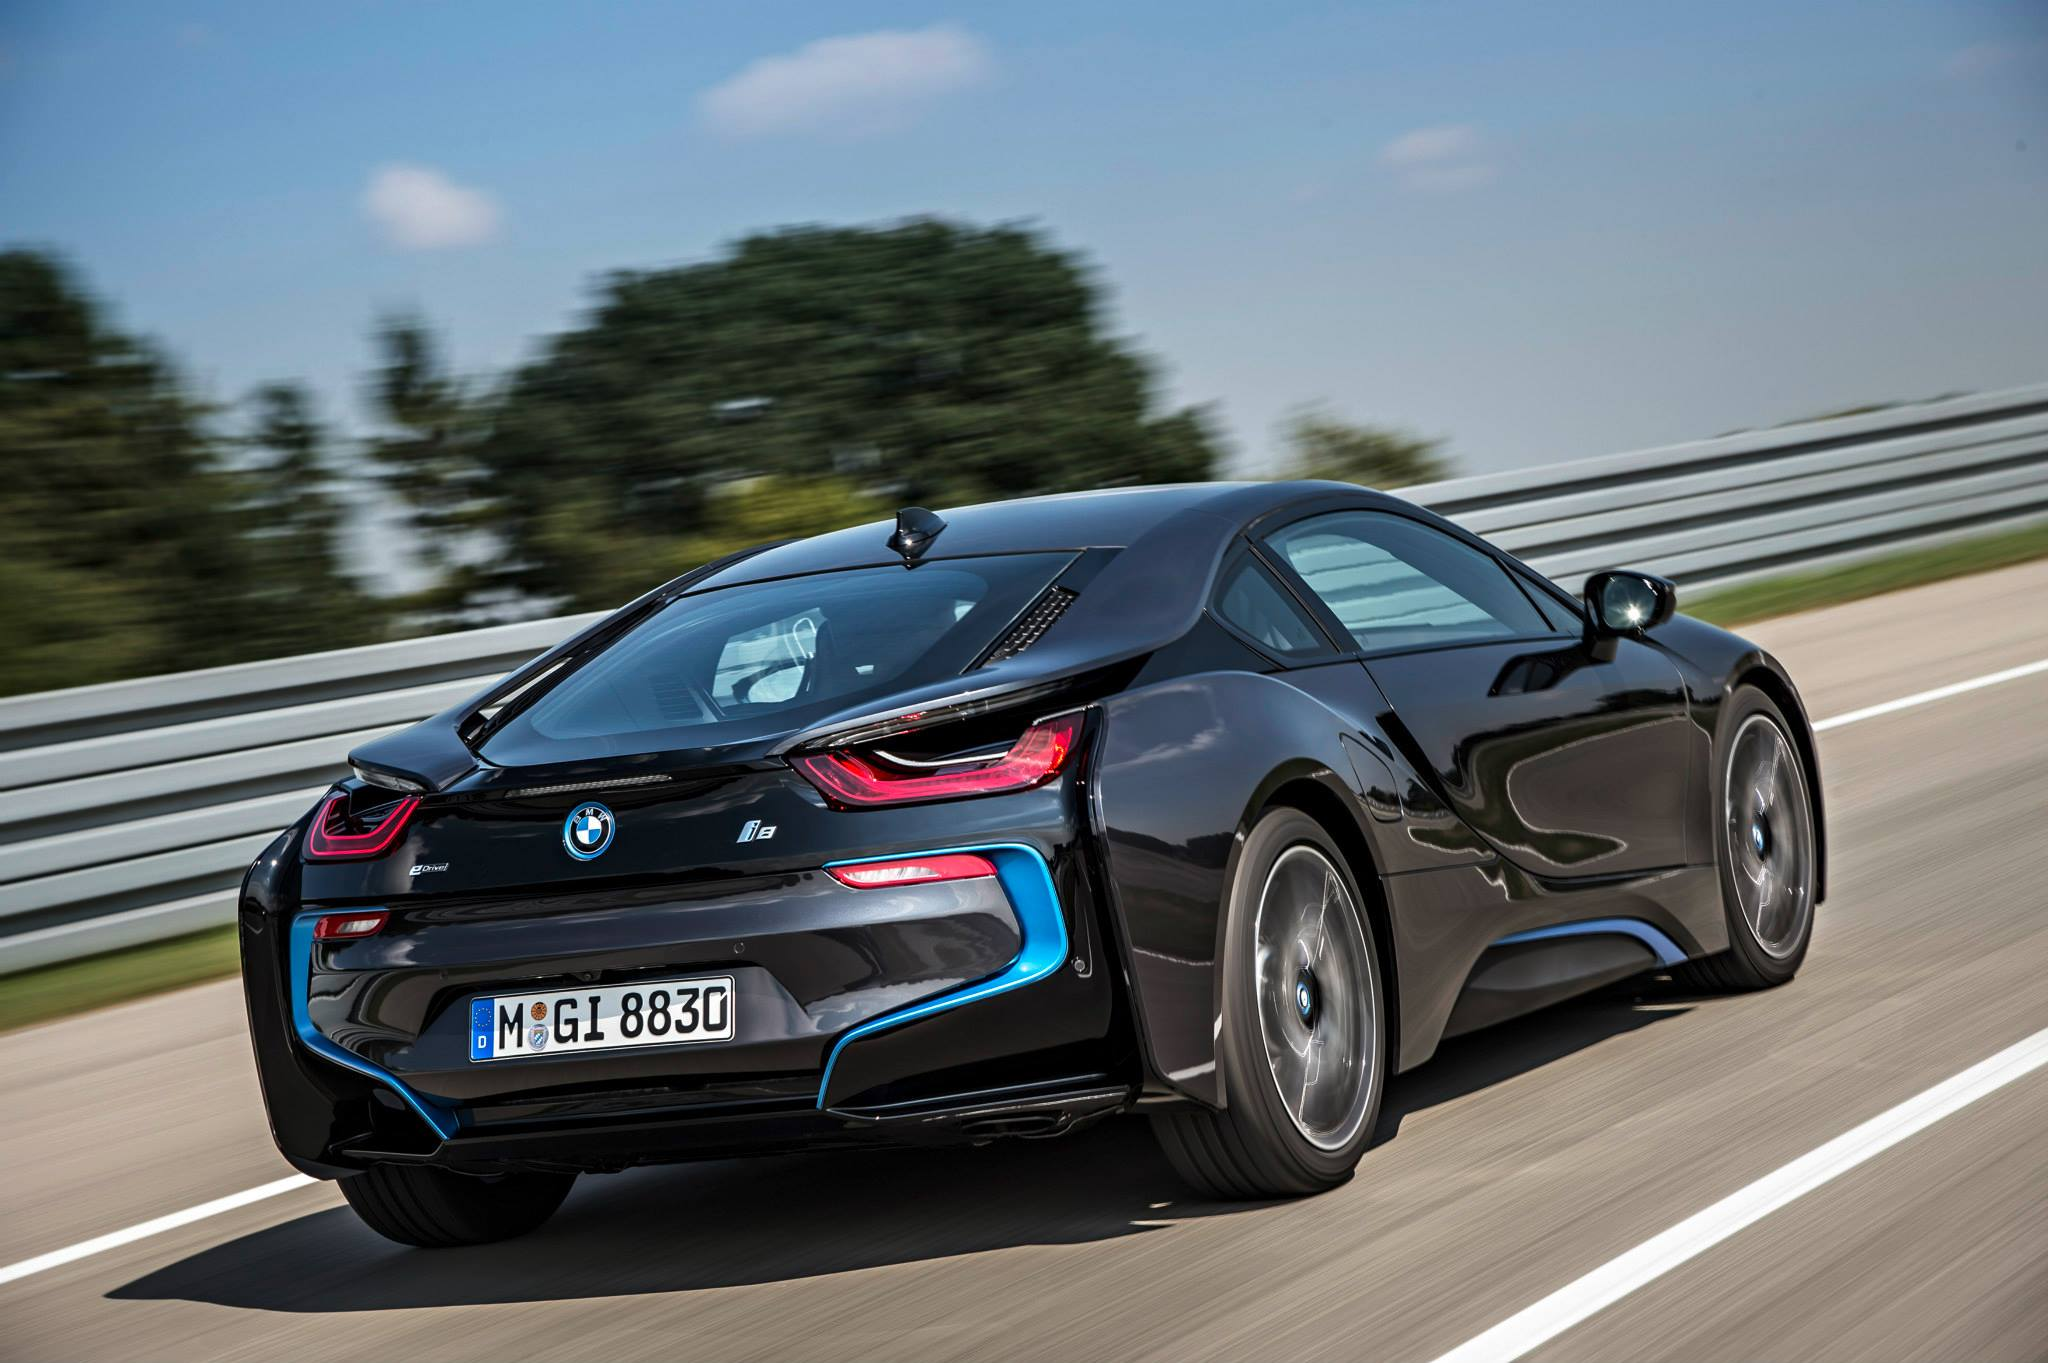 Beautiful Bmw Z4 Roter Ibiza Cars Car Hire Ibz Airport Wallpaper Bmw 2 Door Sports  Car 2018 Carina 2016 Bmw Z4 Review Ratings Specs S And Photos The Car 2019  Bmw I8 ...